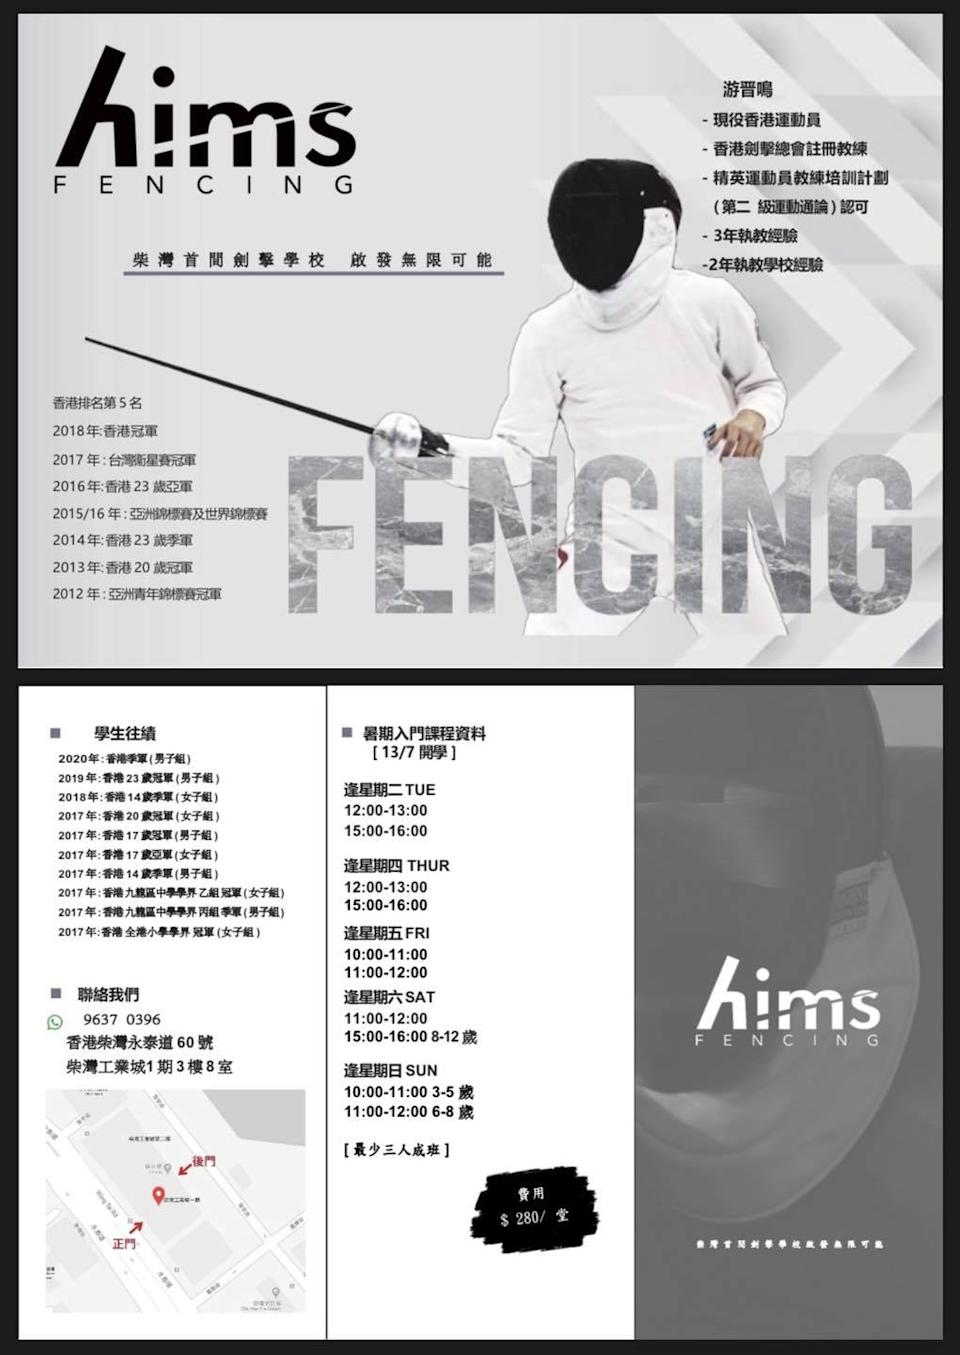 Hims fencing